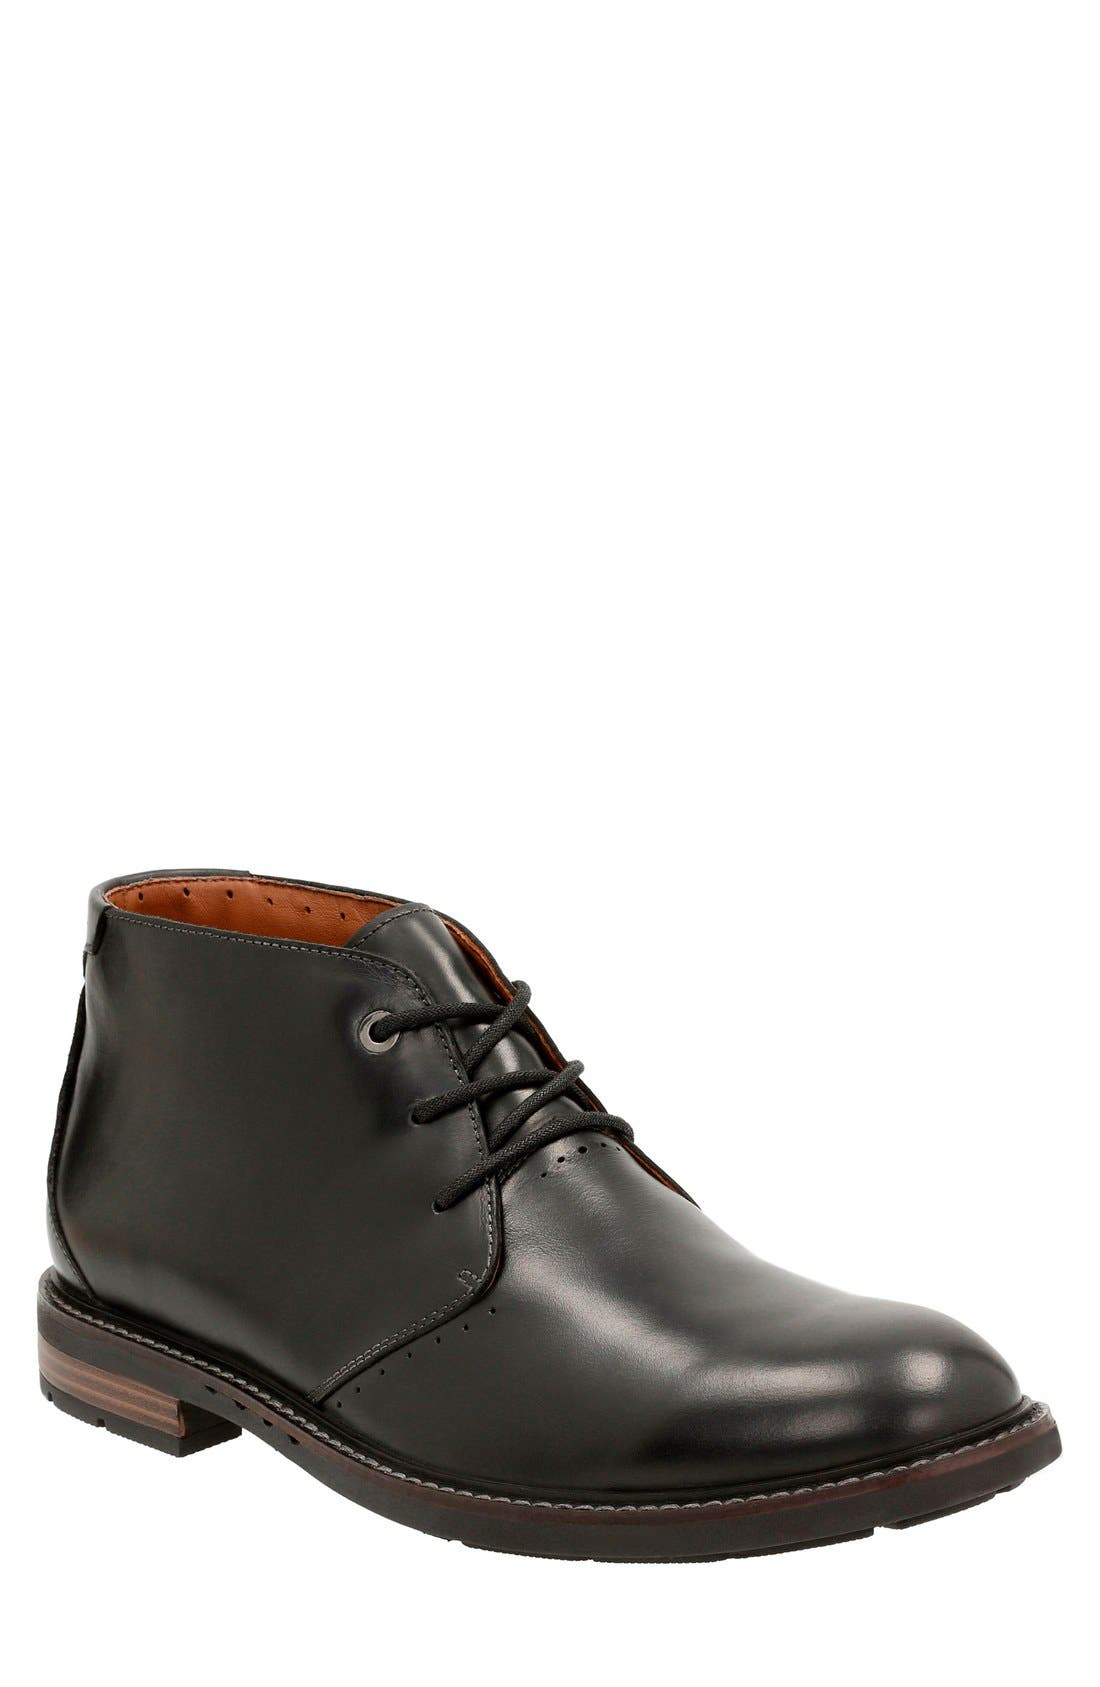 Alternate Image 1 Selected - Clarks® 'Unstructured - Elliott' Chukka Boot (Men)